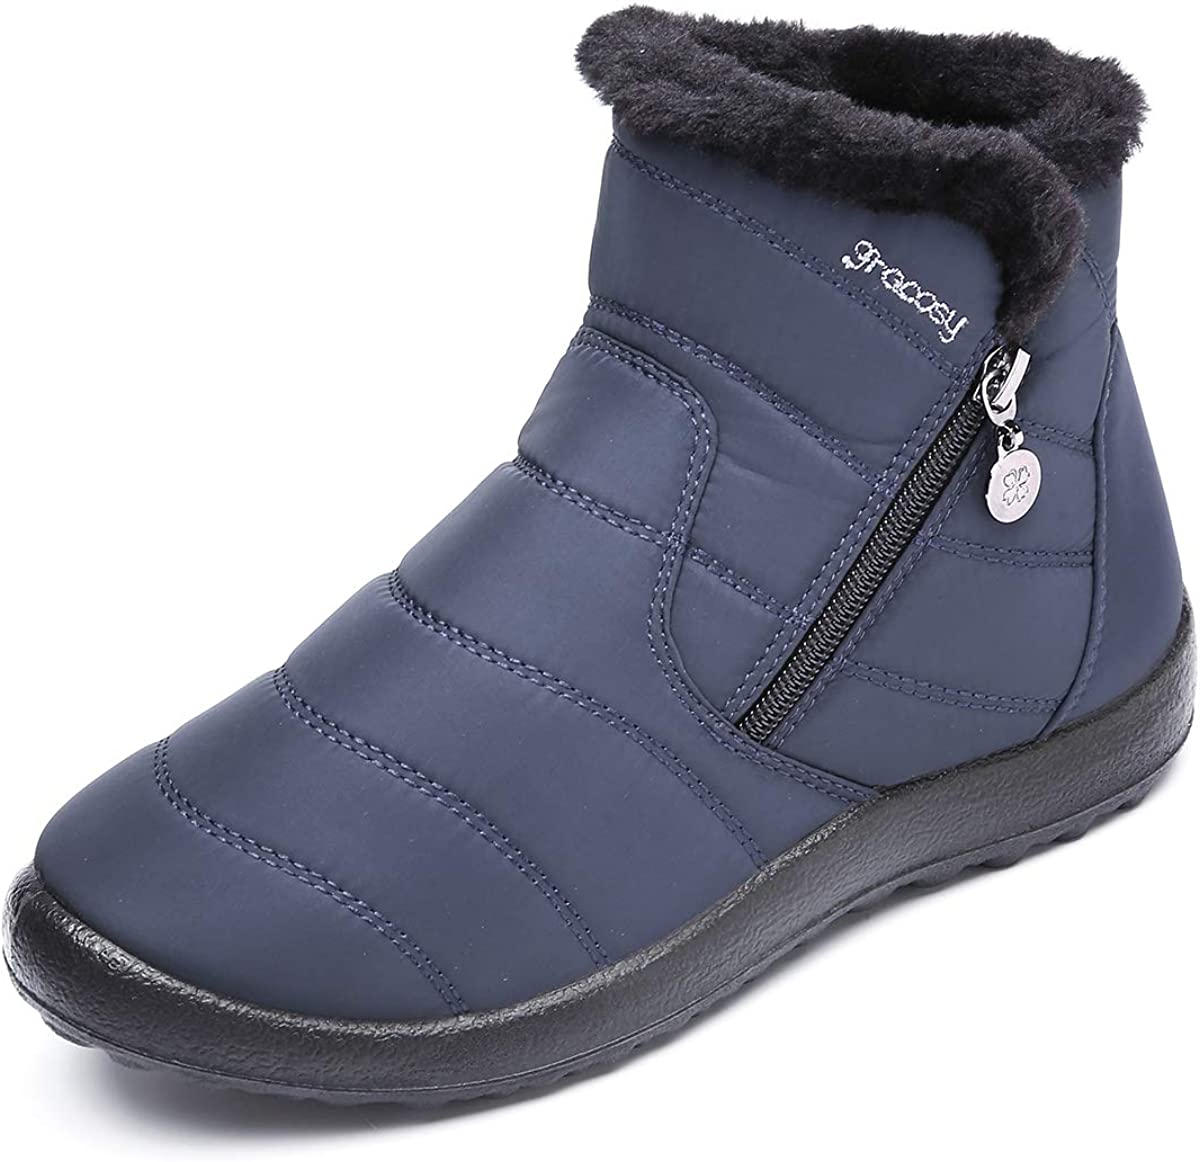 Winter Women Warm Snow Boots Shoes Fur-lined Slip On Ankle Shoes Waterproof